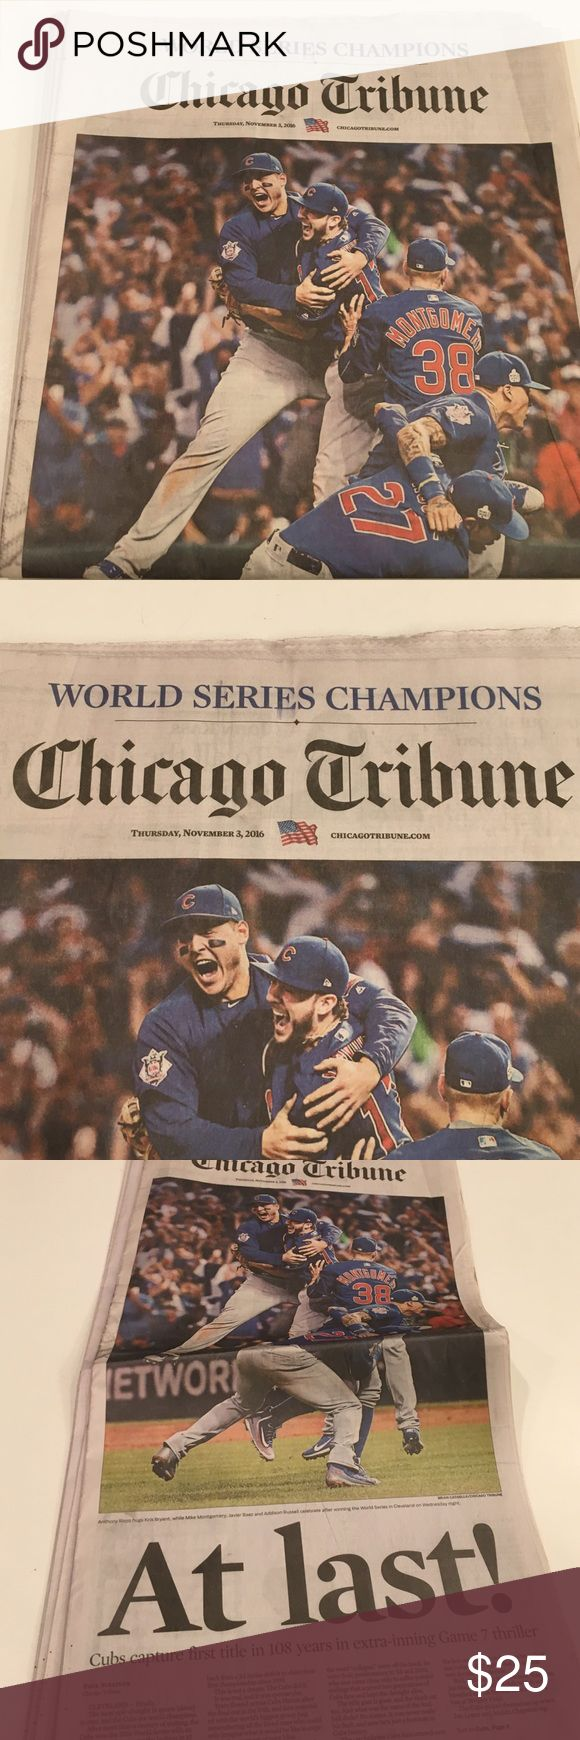 World Series Champions Chicago Tribune Newspaper collector addition I have sun times too chicago tribune Accessories